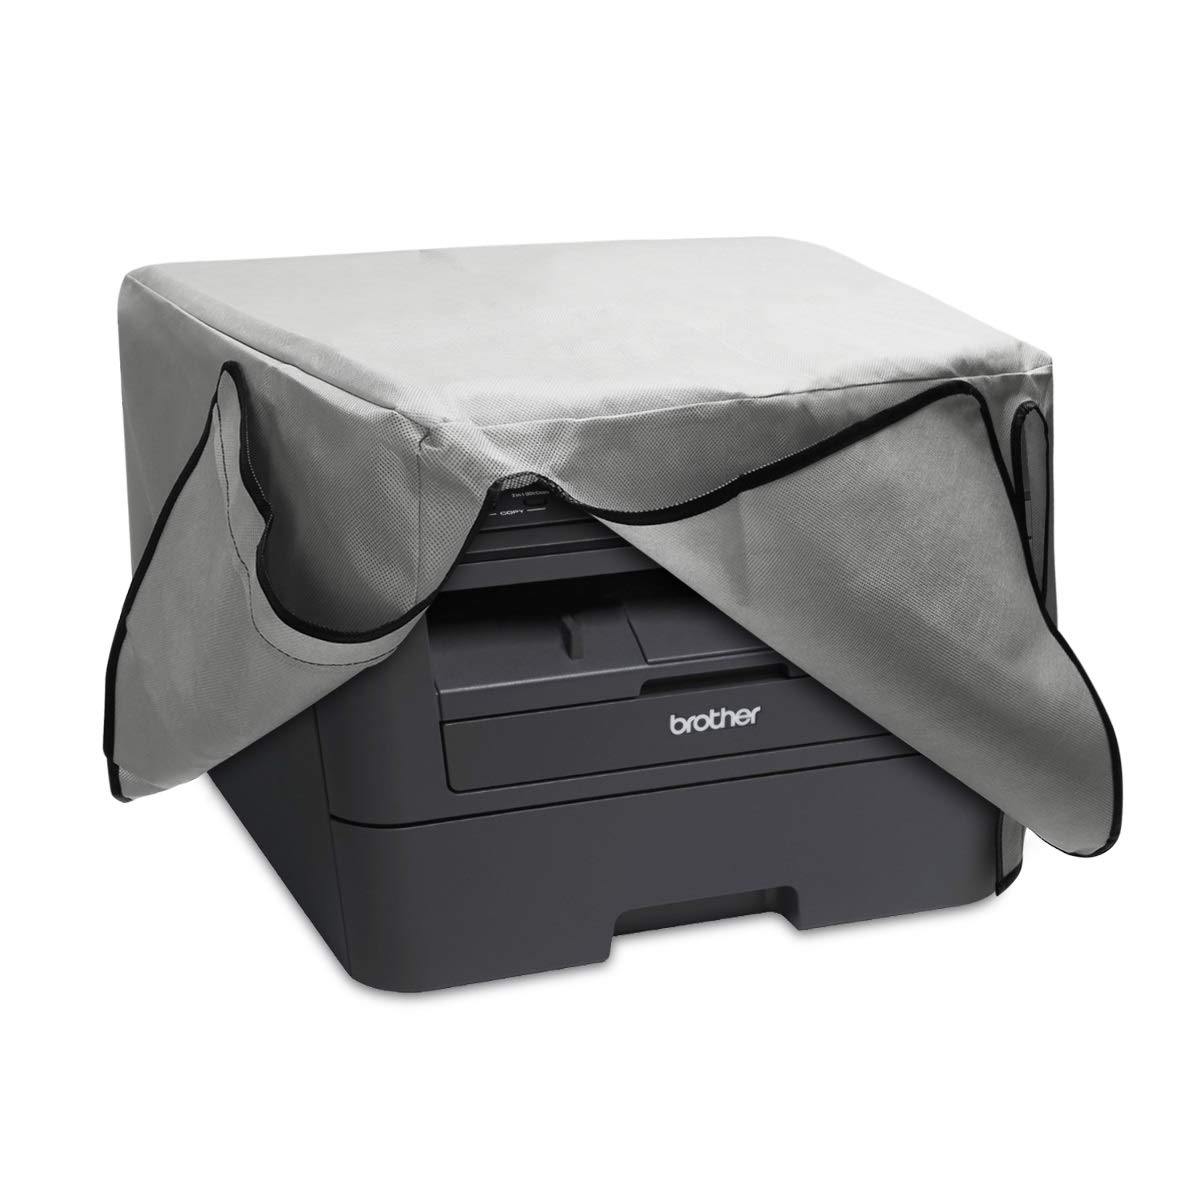 Amazon.com: kwmobile Dust Cover for Brother DCP-L2530DW ...